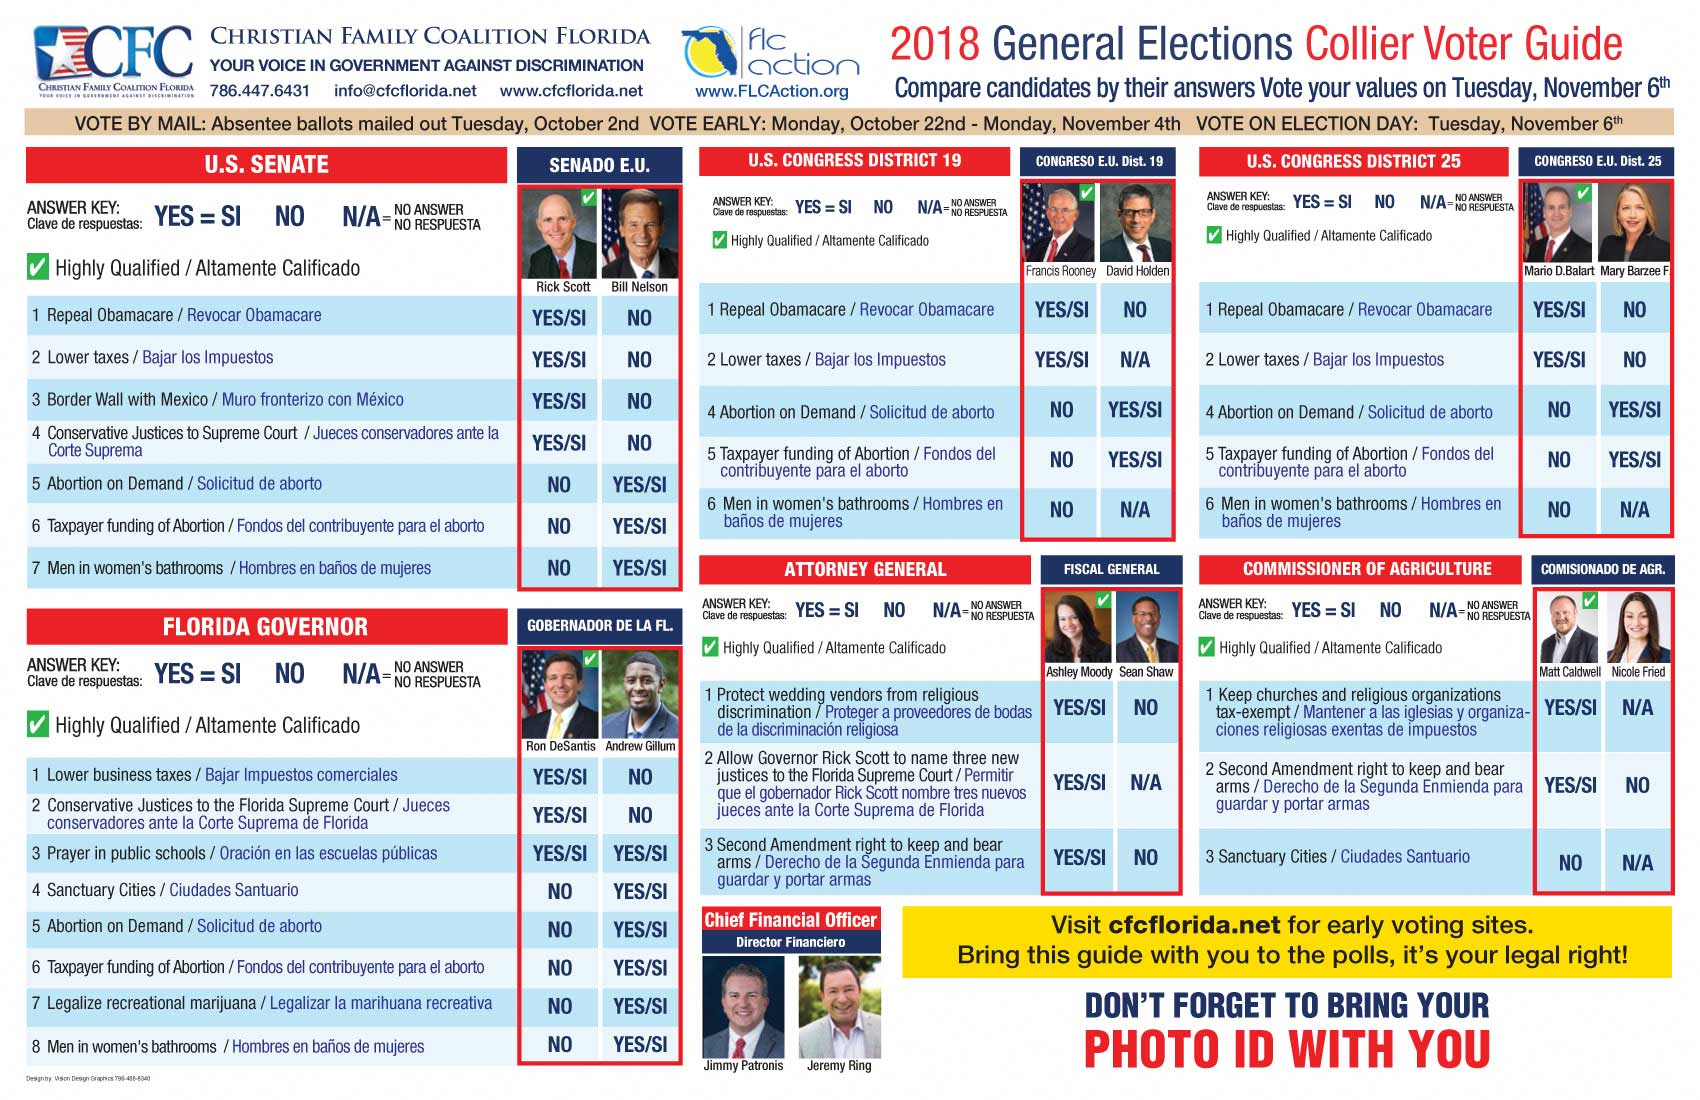 2018-collier-voter-guide_Page_1